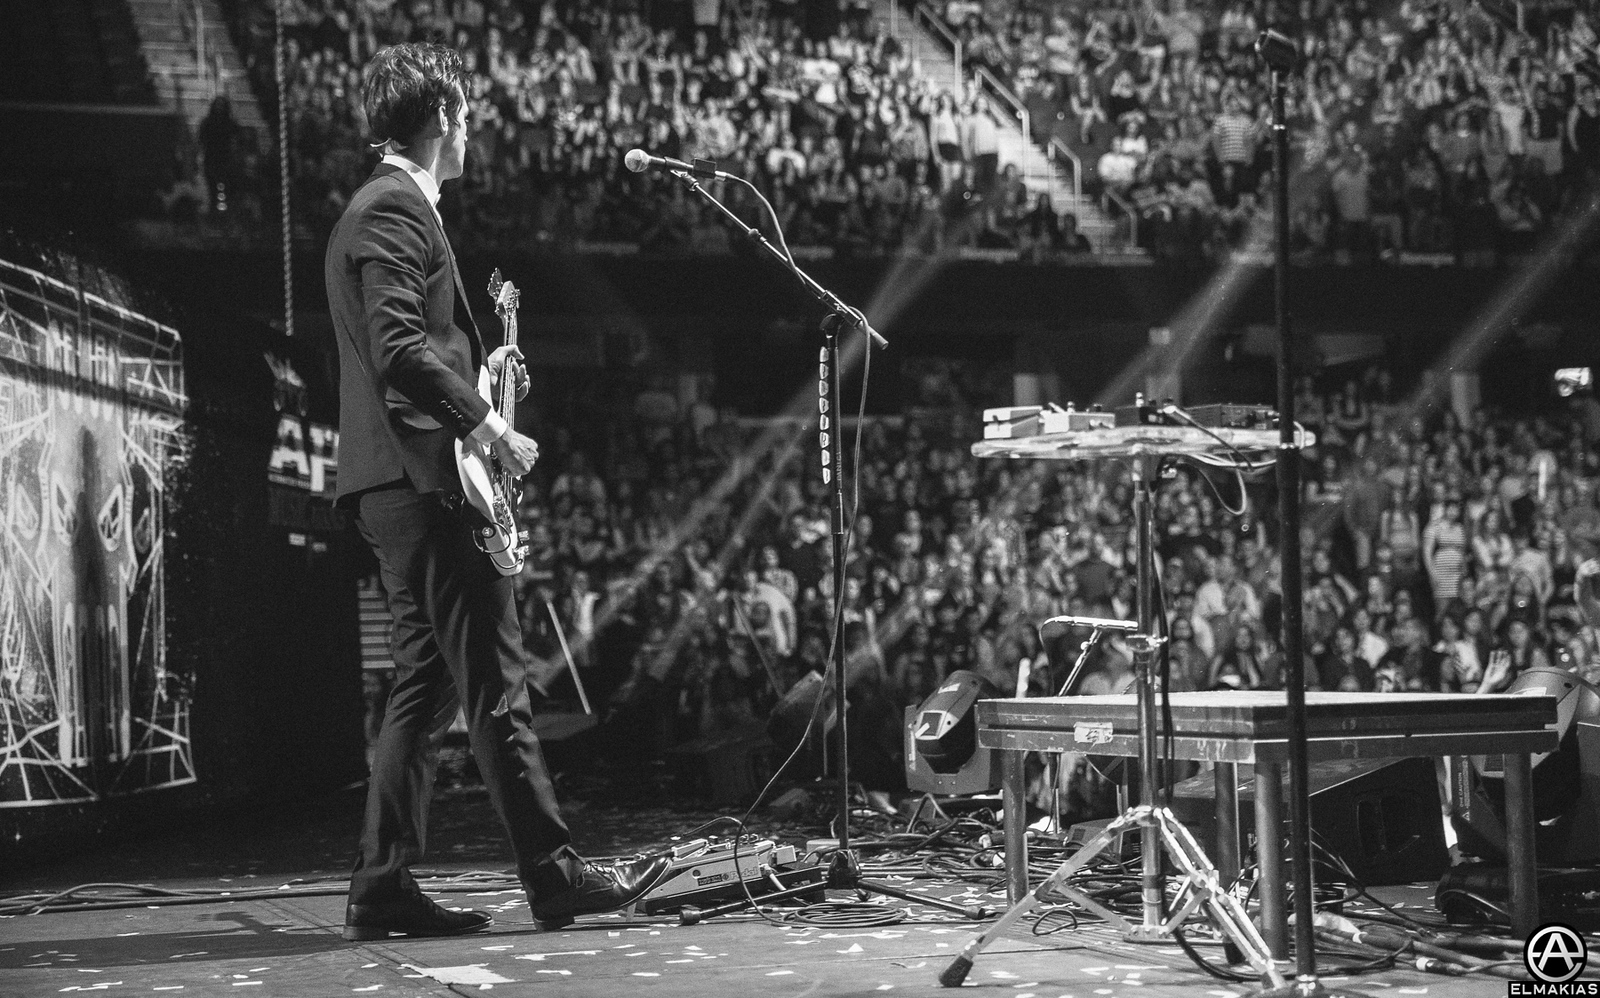 Dallon Weekes of Panic! At The Disco performing live at the Alternative Press Music Awards 2015 by Adam Elmakias